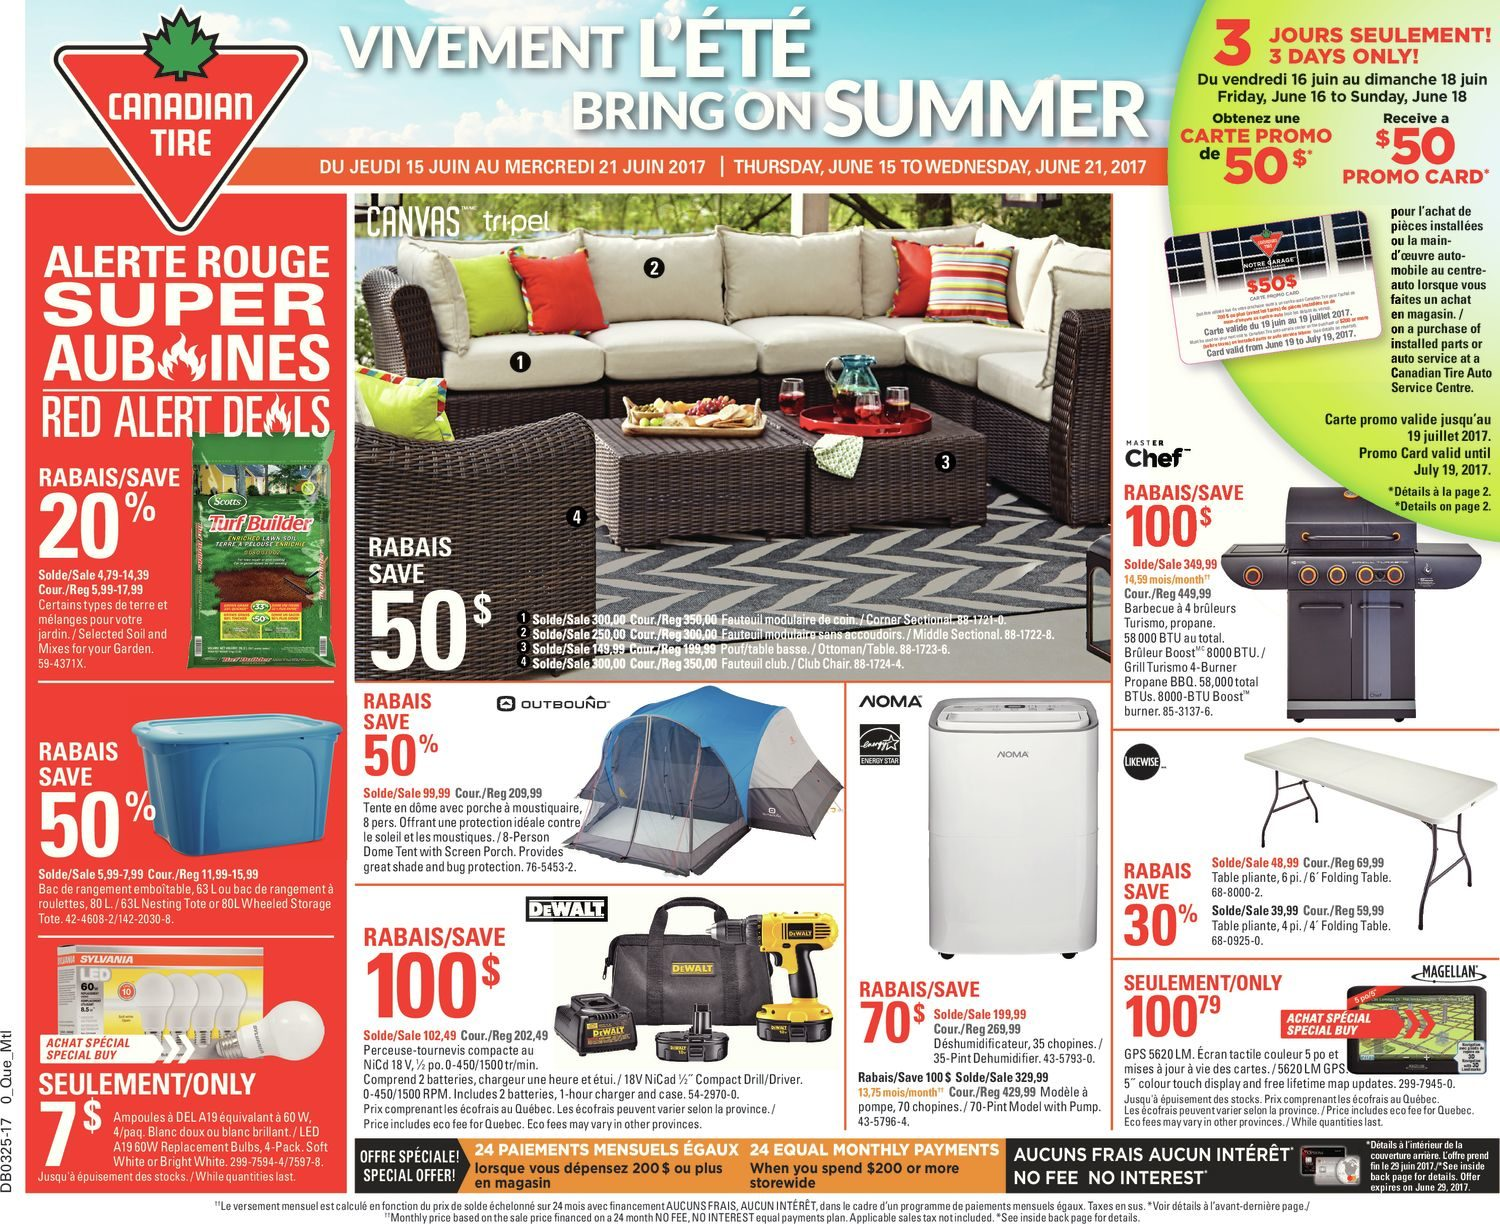 Sofa Legs Canadian Tire Canadian Tire Weekly Flyer Weekly Bring On Summer Jun 15